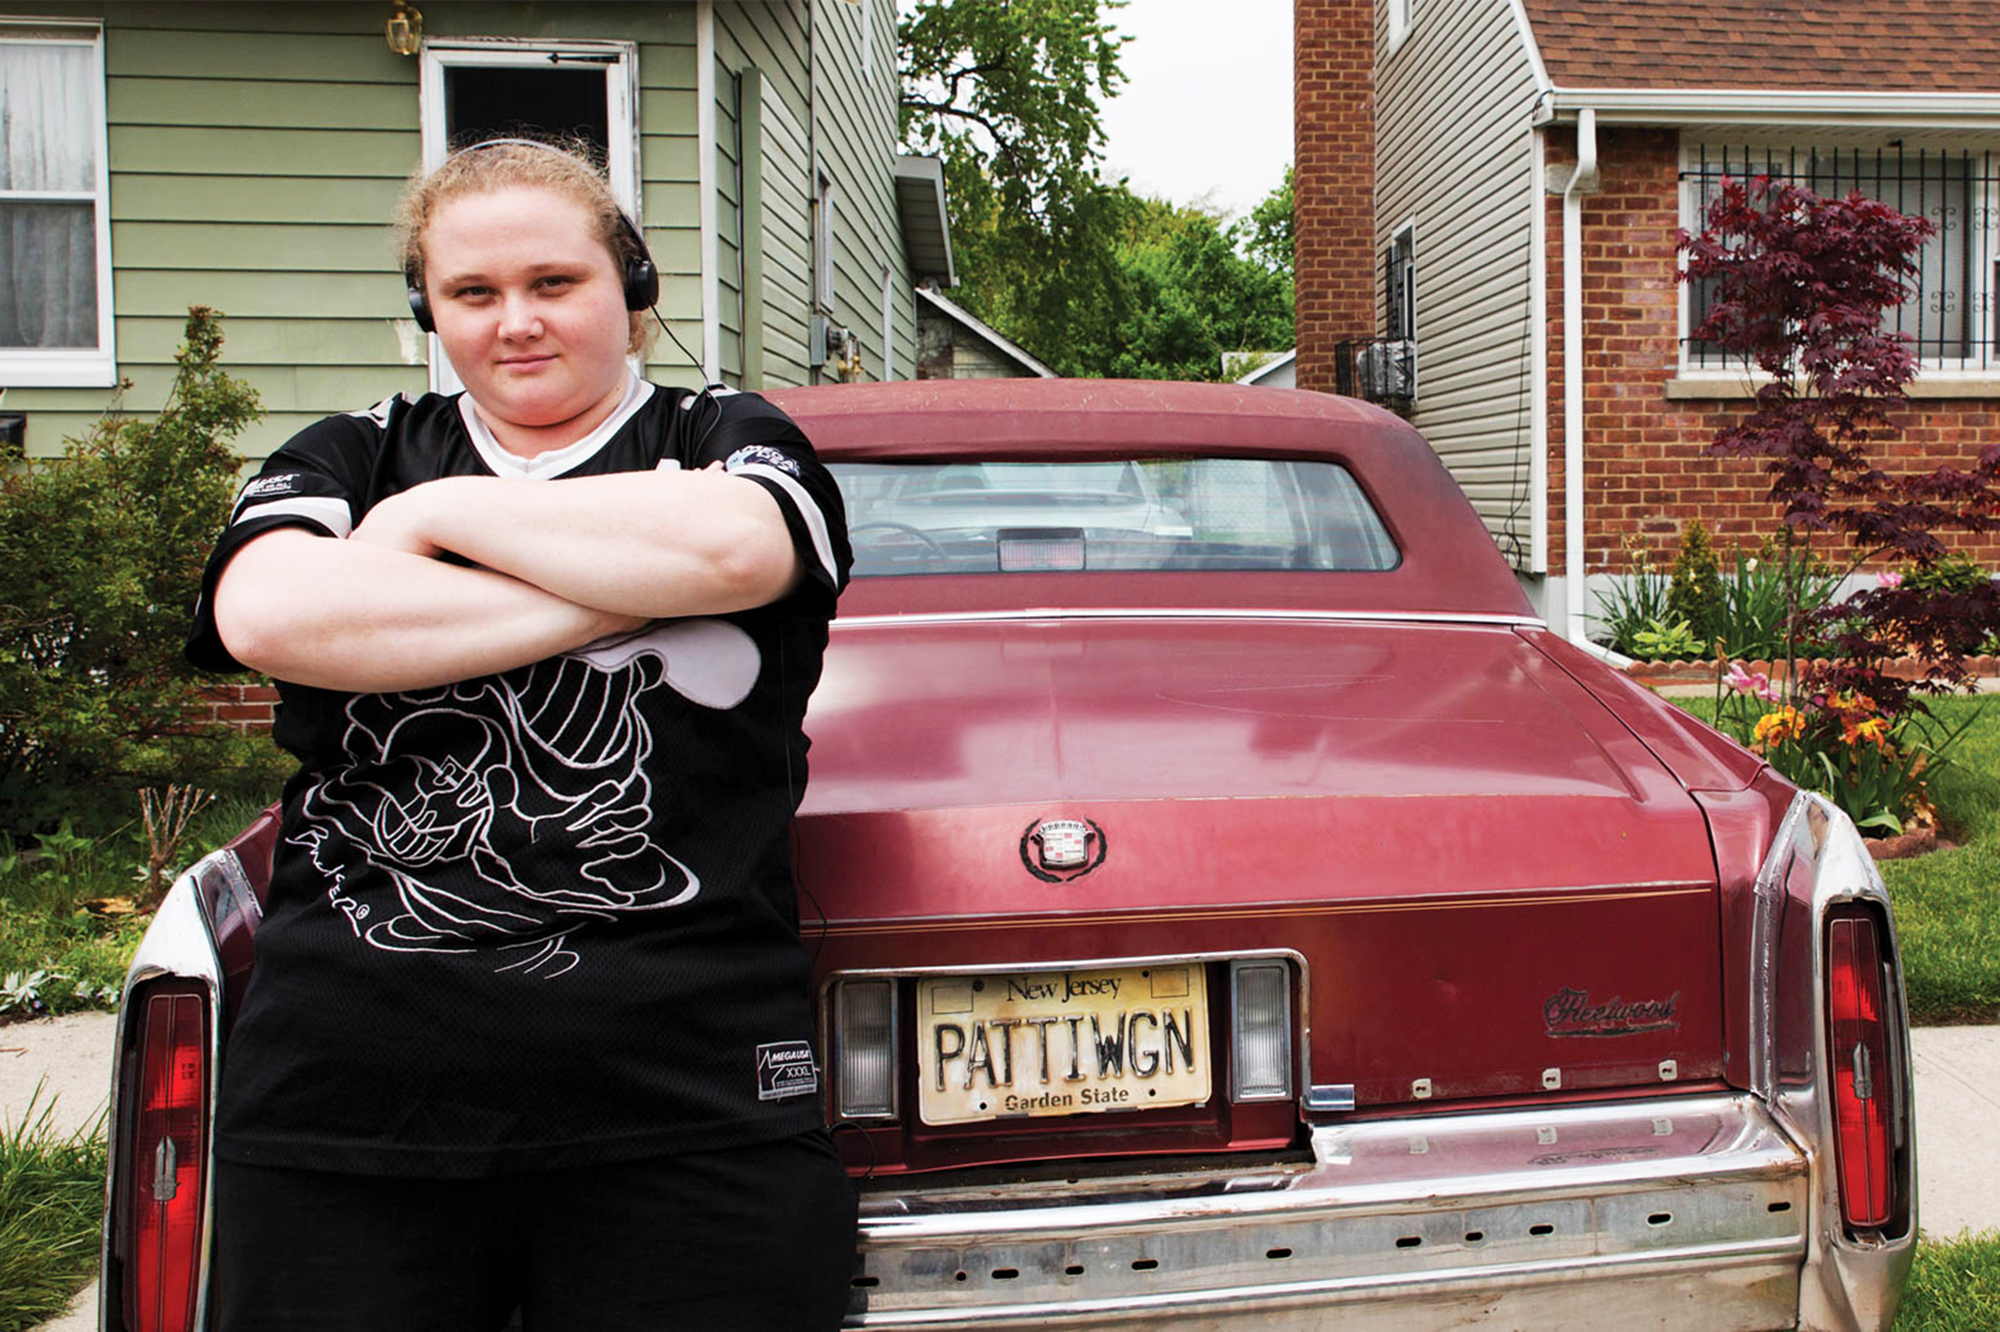 Danielle Macdonald appears in Patti Cake$, an official selection of the U.S. Dramatic Competition at the 2017 Sundance Film Festival. Courtesy of Sundance Institute.